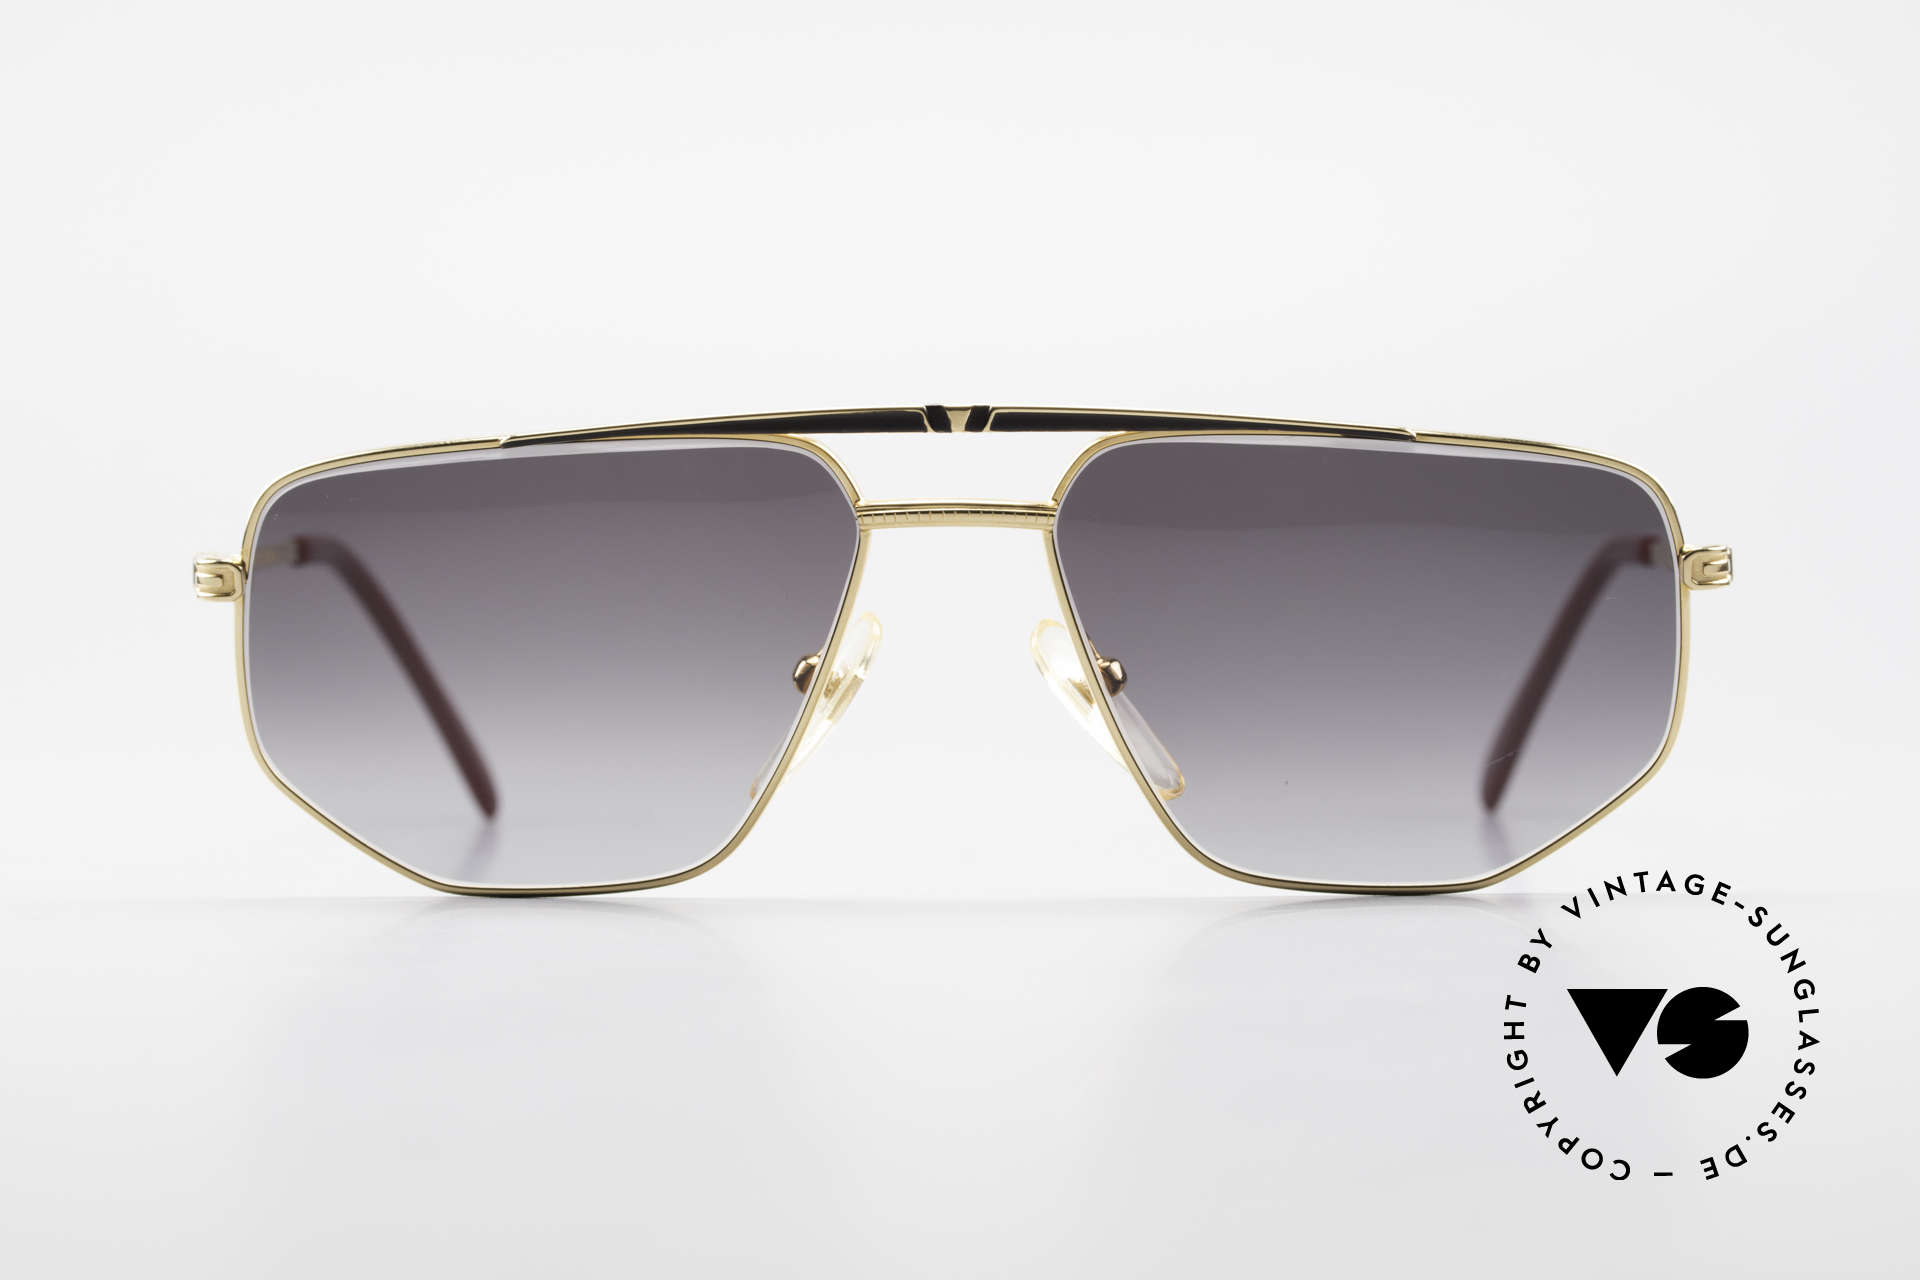 Roman Rothschild R1037 Gold Plated Shades Luxury, all frames by Rothschild are 18Kt or 20Kt gold-plated, Made for Men and Women